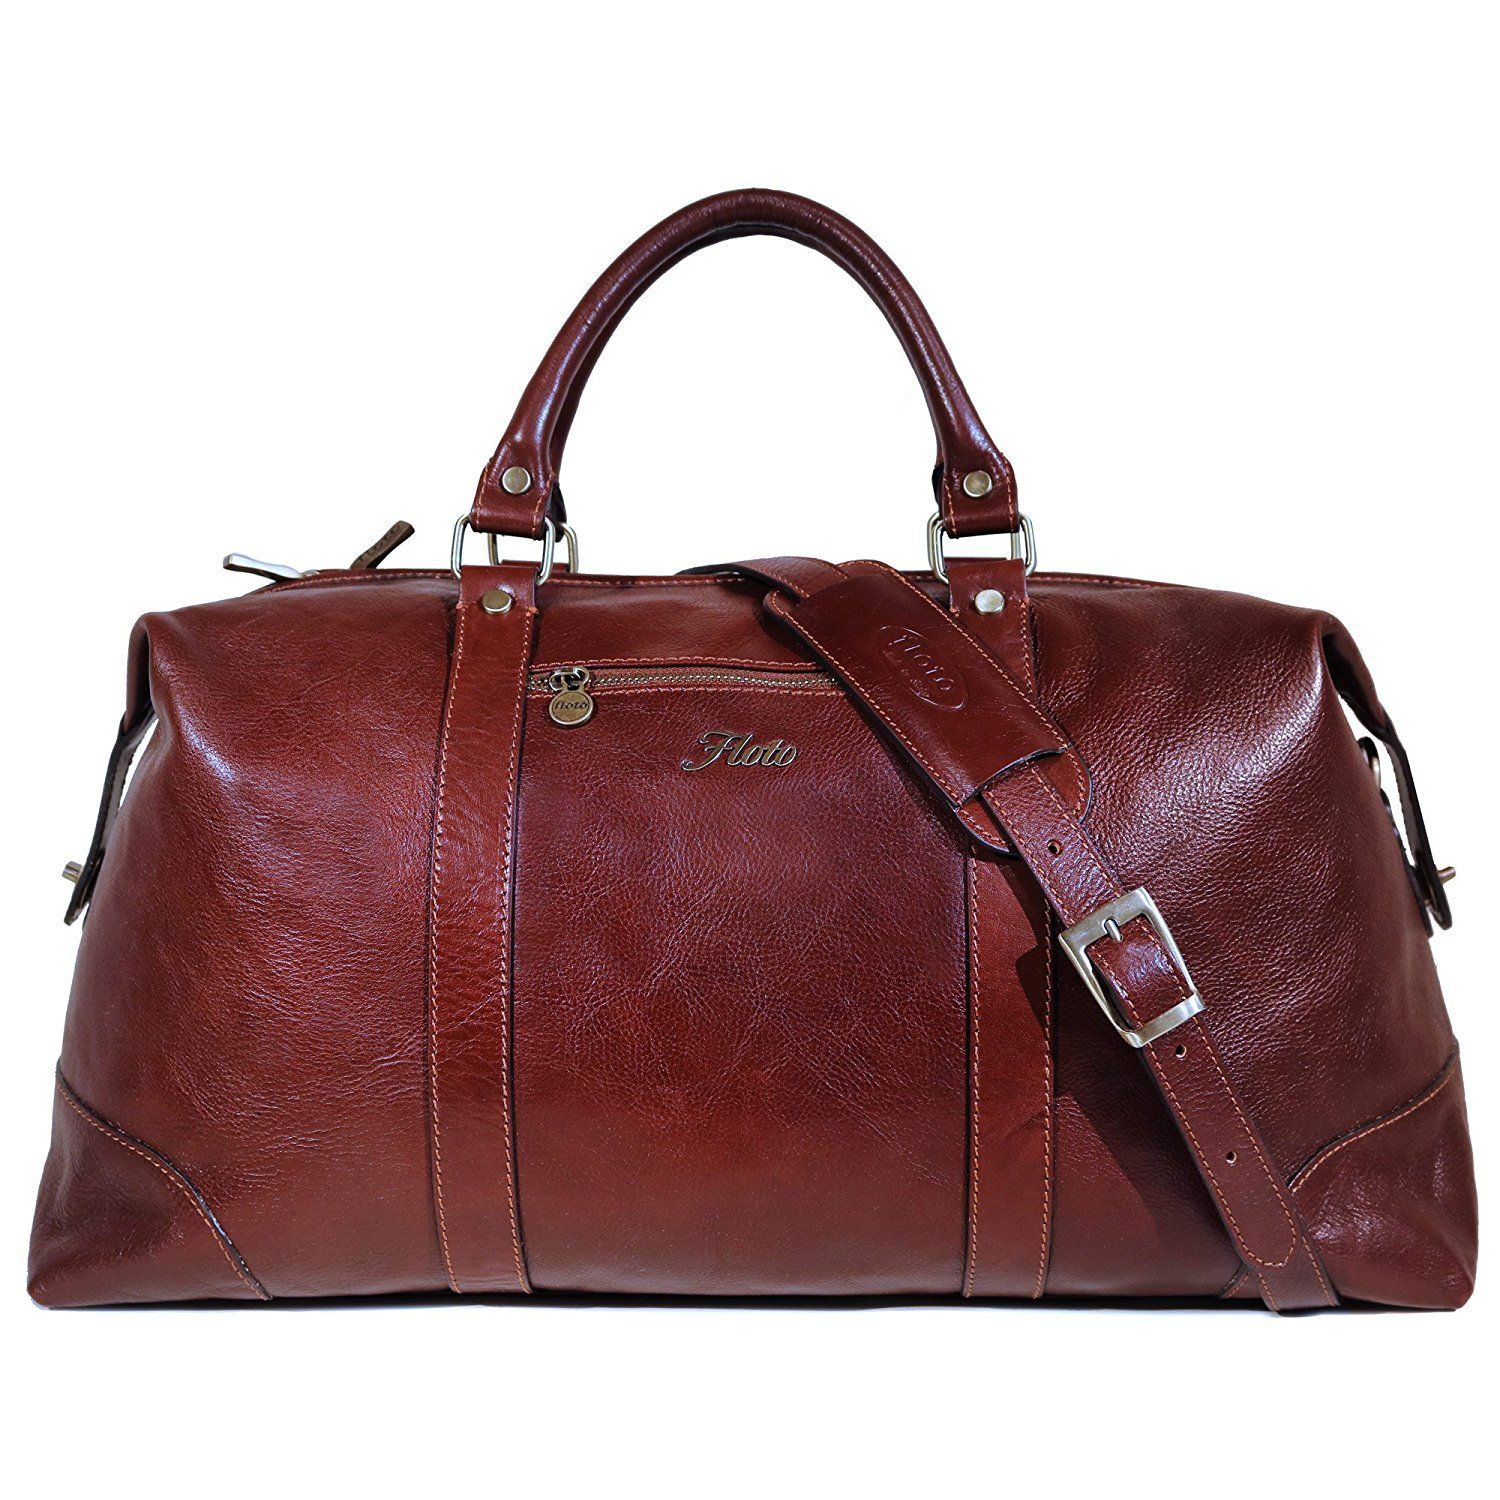 Floto Collection Sport Duffle in Vecchio Brown Italian Calfskin Leather 3mGNpm